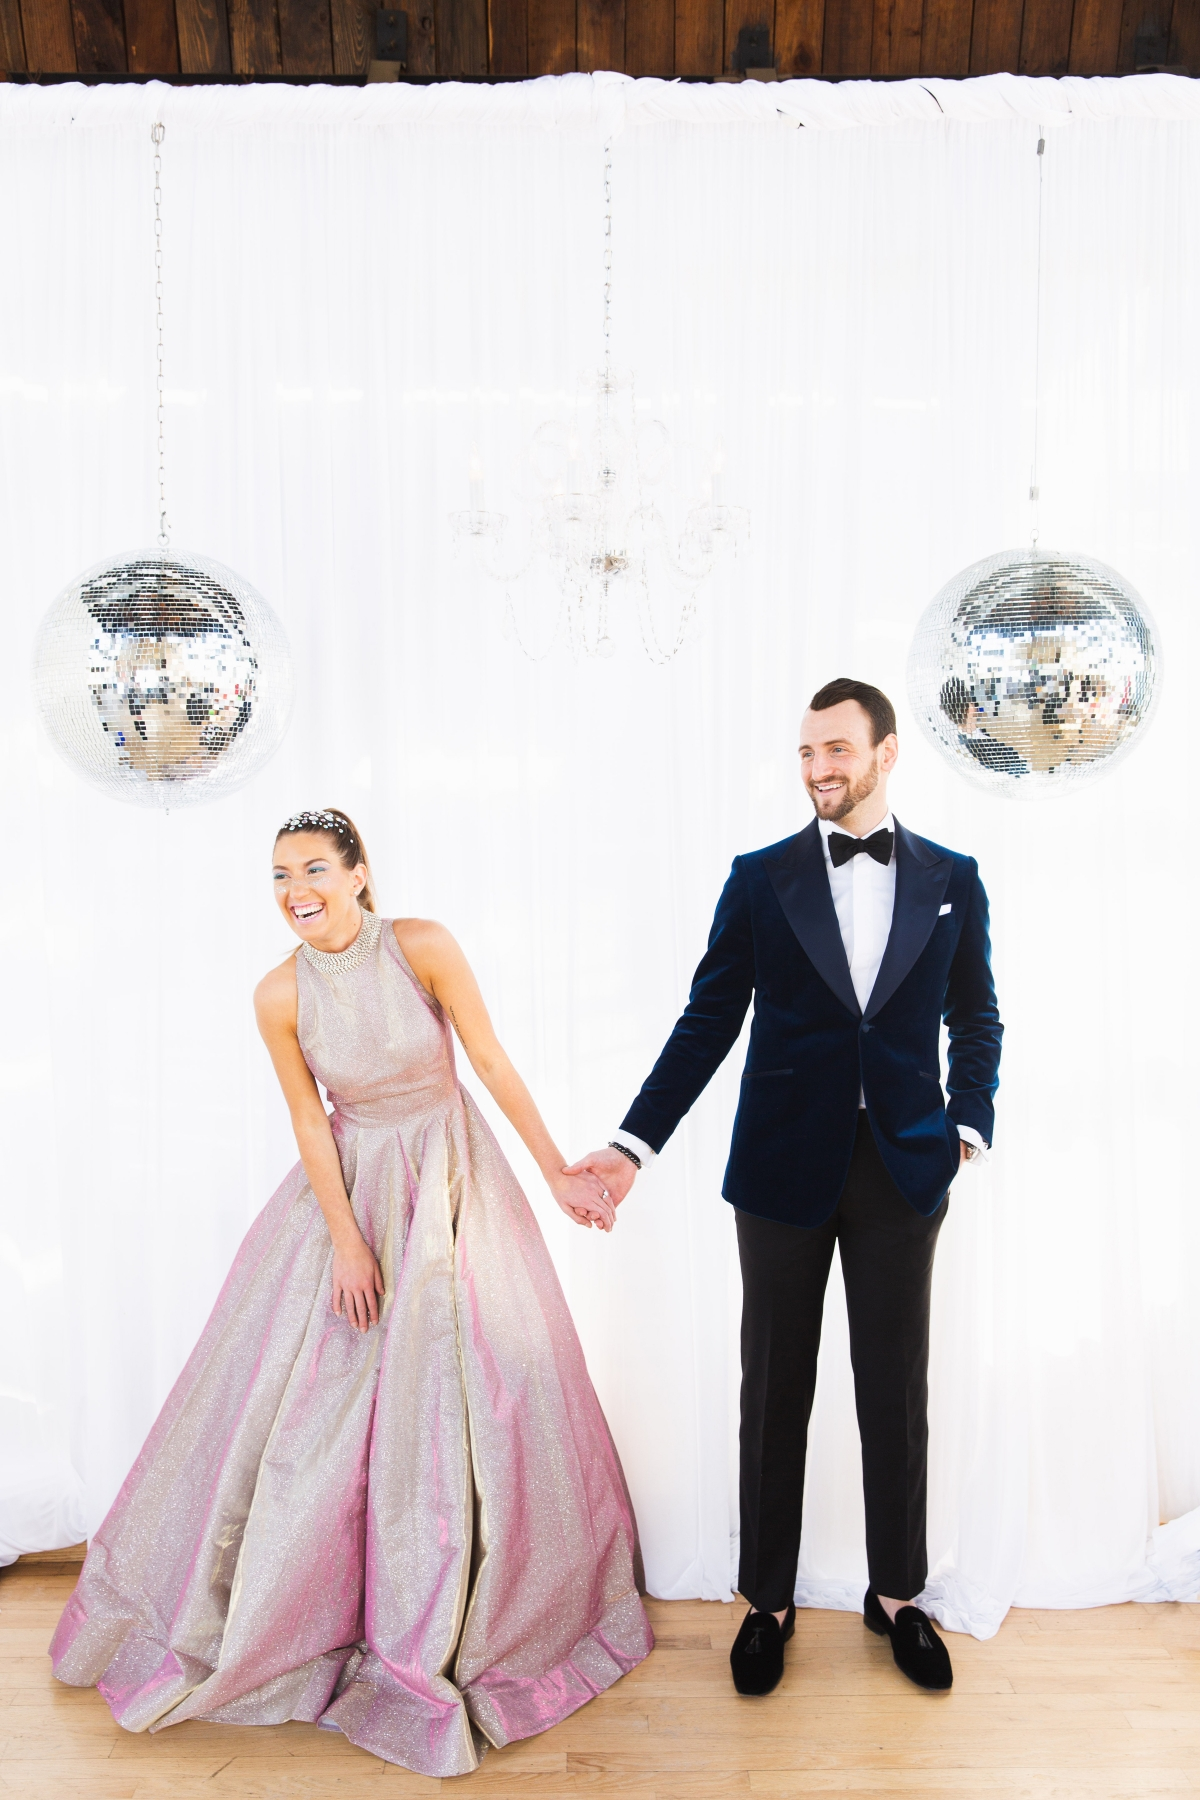 Colorful Iridescent Futuristic Chicago Wedding Inspiration 59